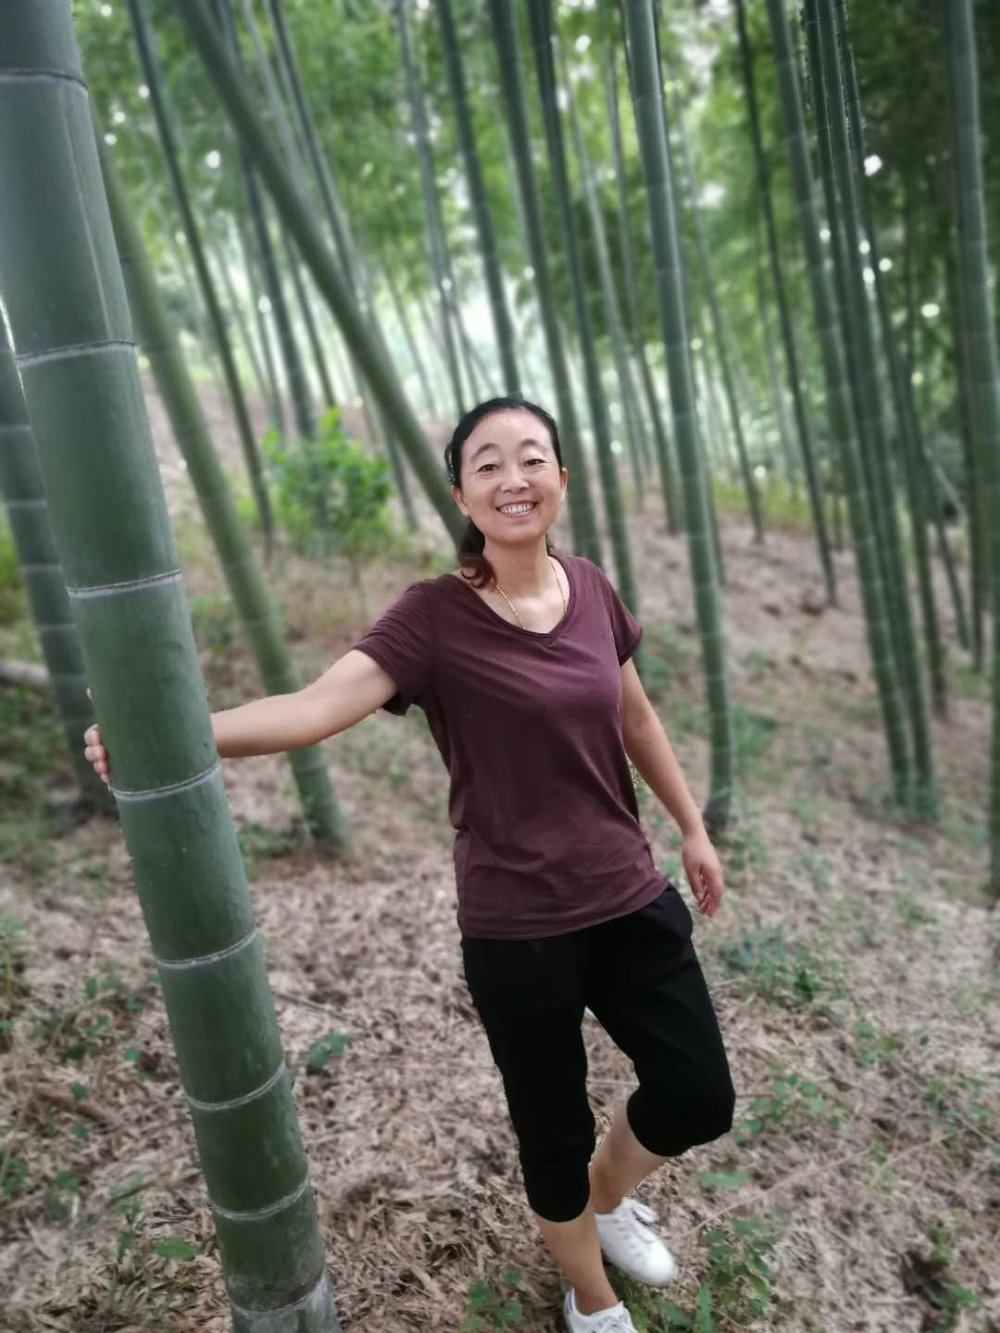 Getting down from her tea gardens. Jin was reminding me to watch my steps. The thick layers of bamboo leaves makes it super slippery and the dried bamboo sticks are pointy.